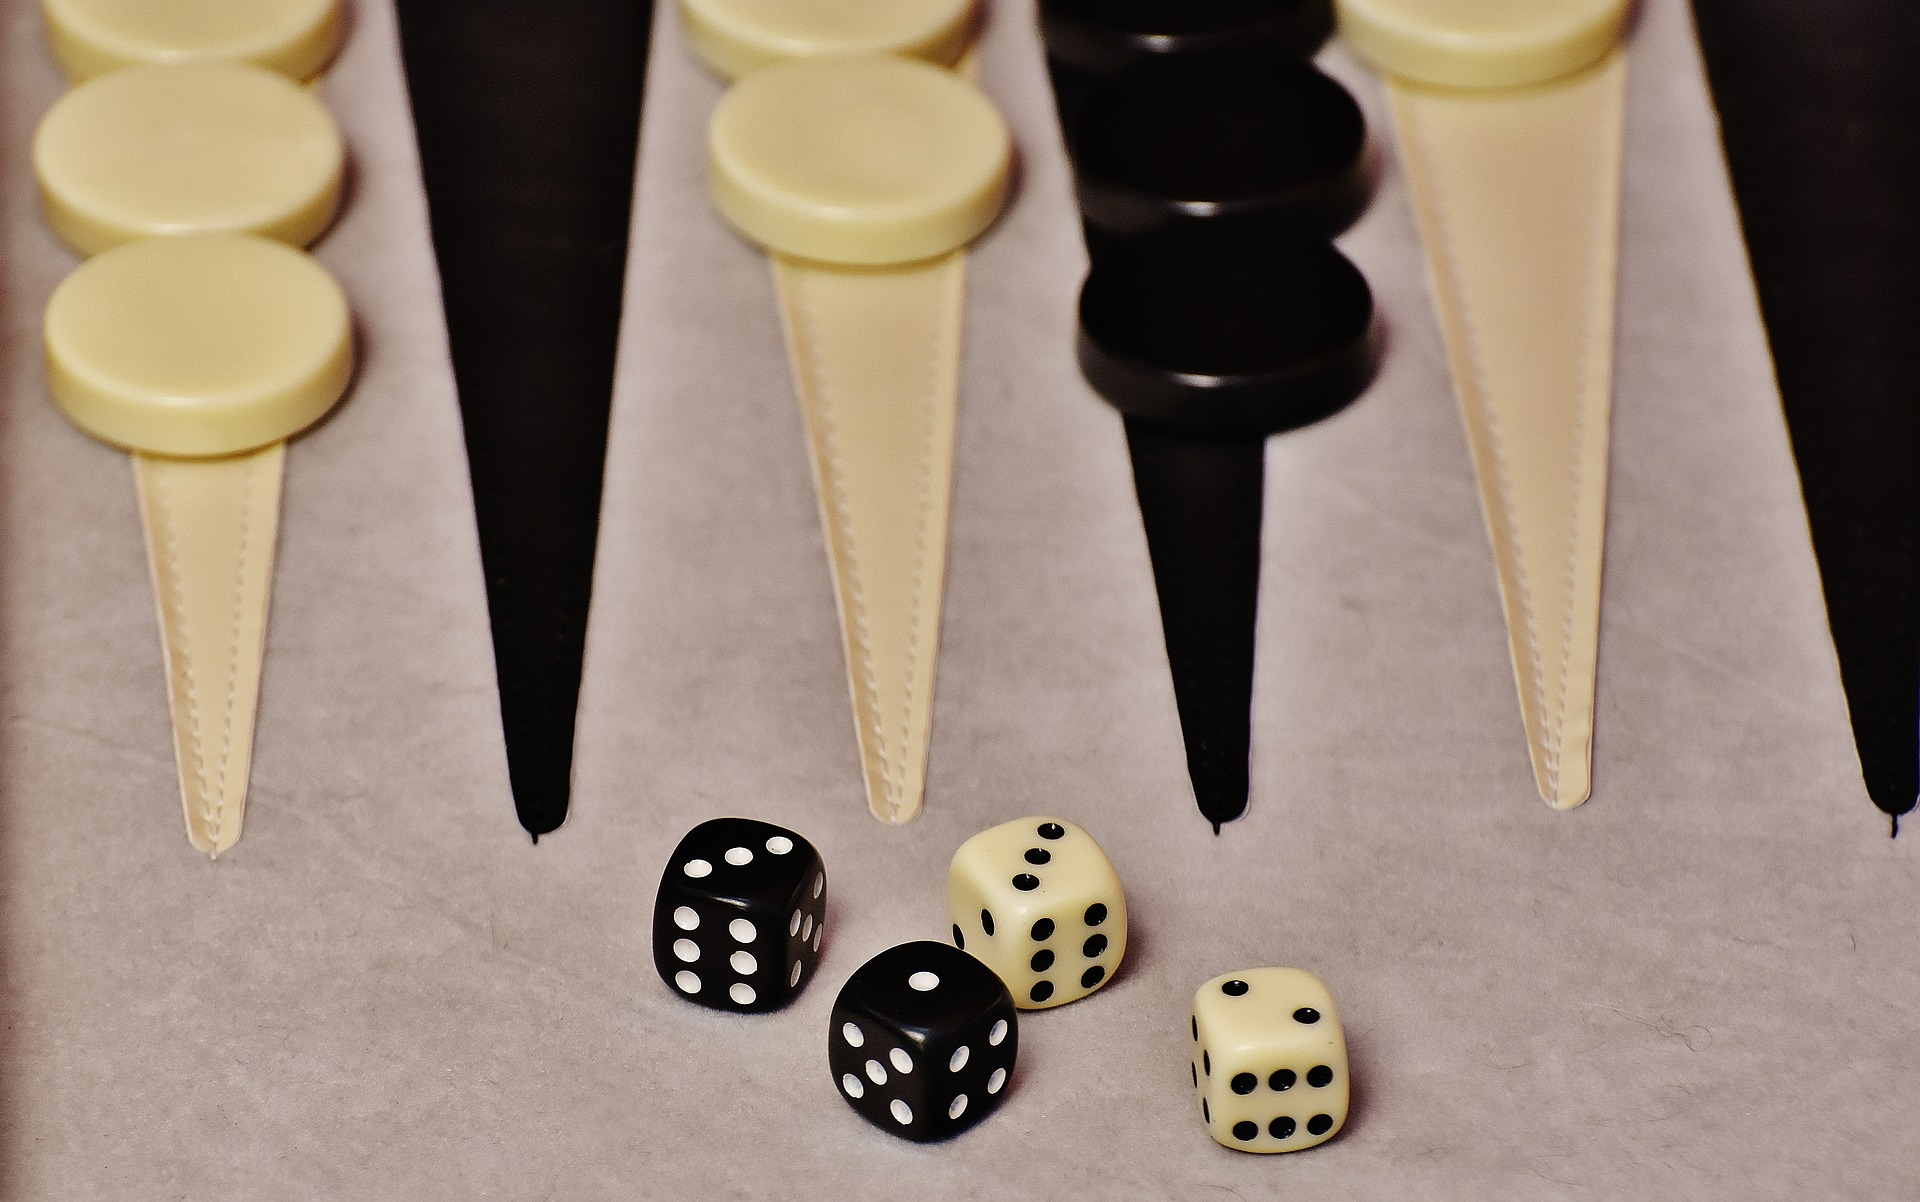 Image photo of a Backgammon board game